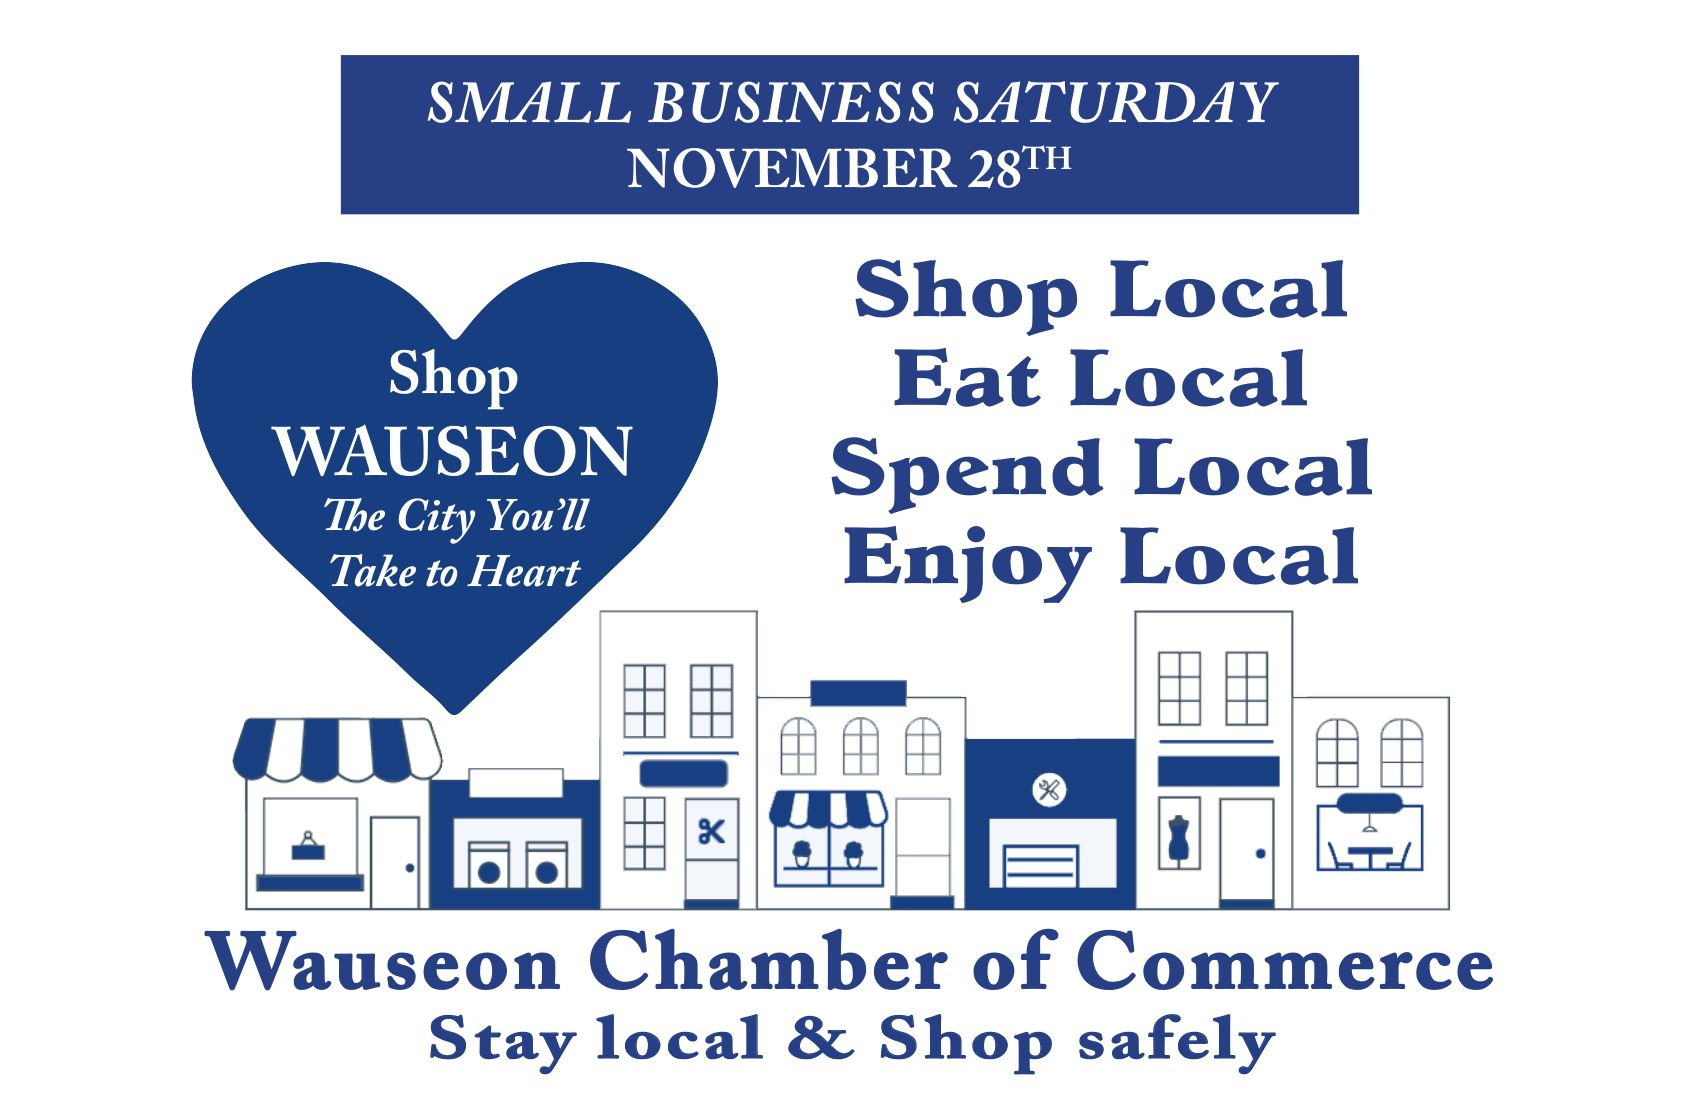 Wauseon_Chamber_of_Commerce_Small_Bus_poster